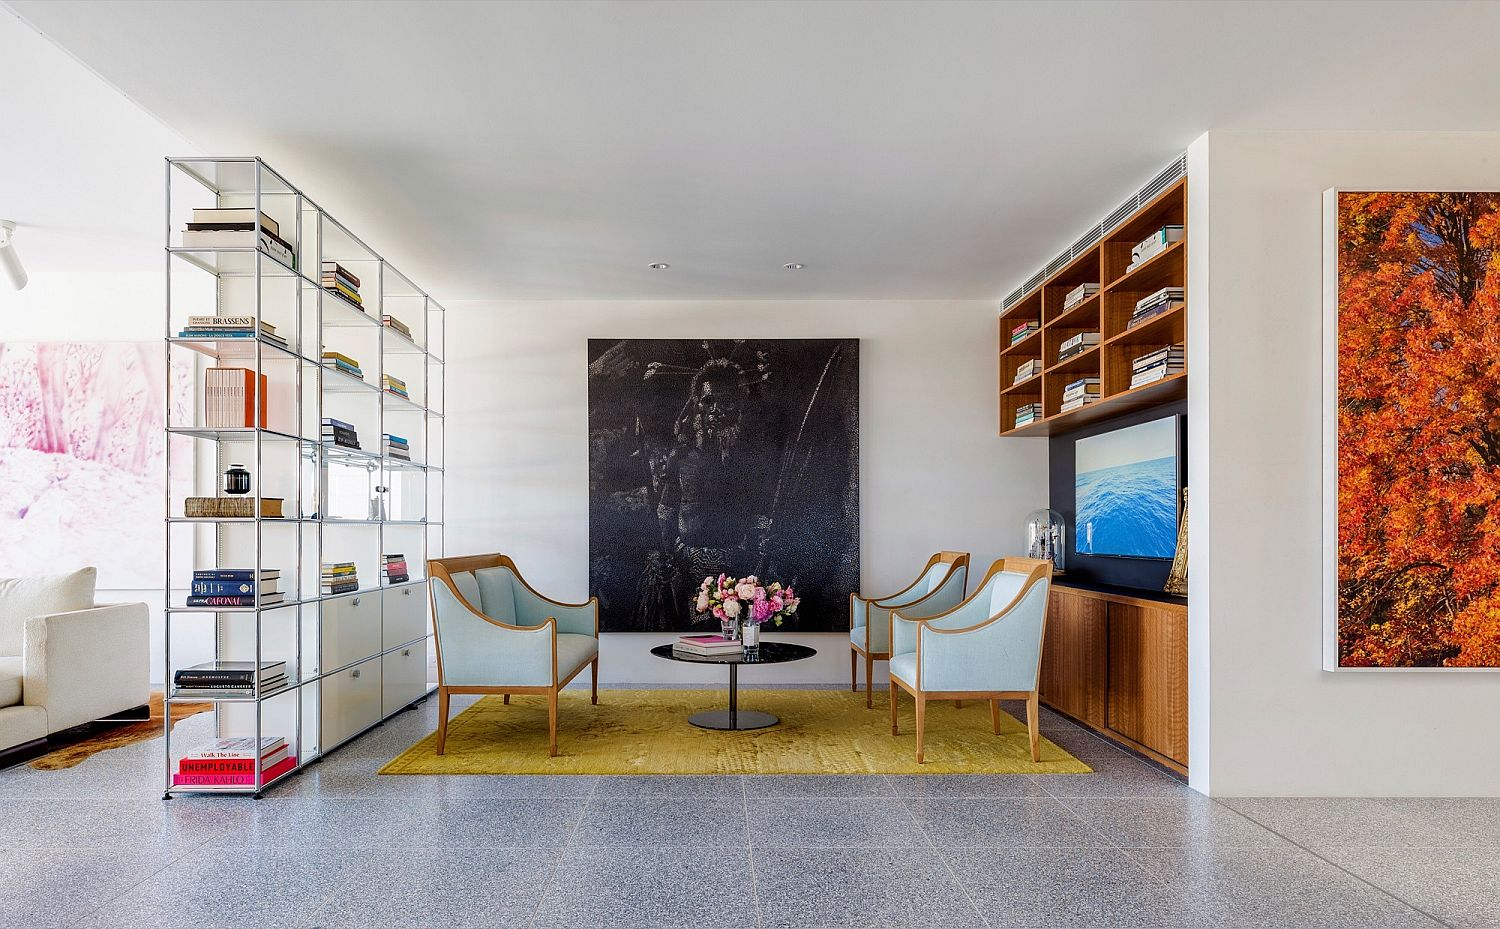 Living room of the home at Bondi Beach in Sydney